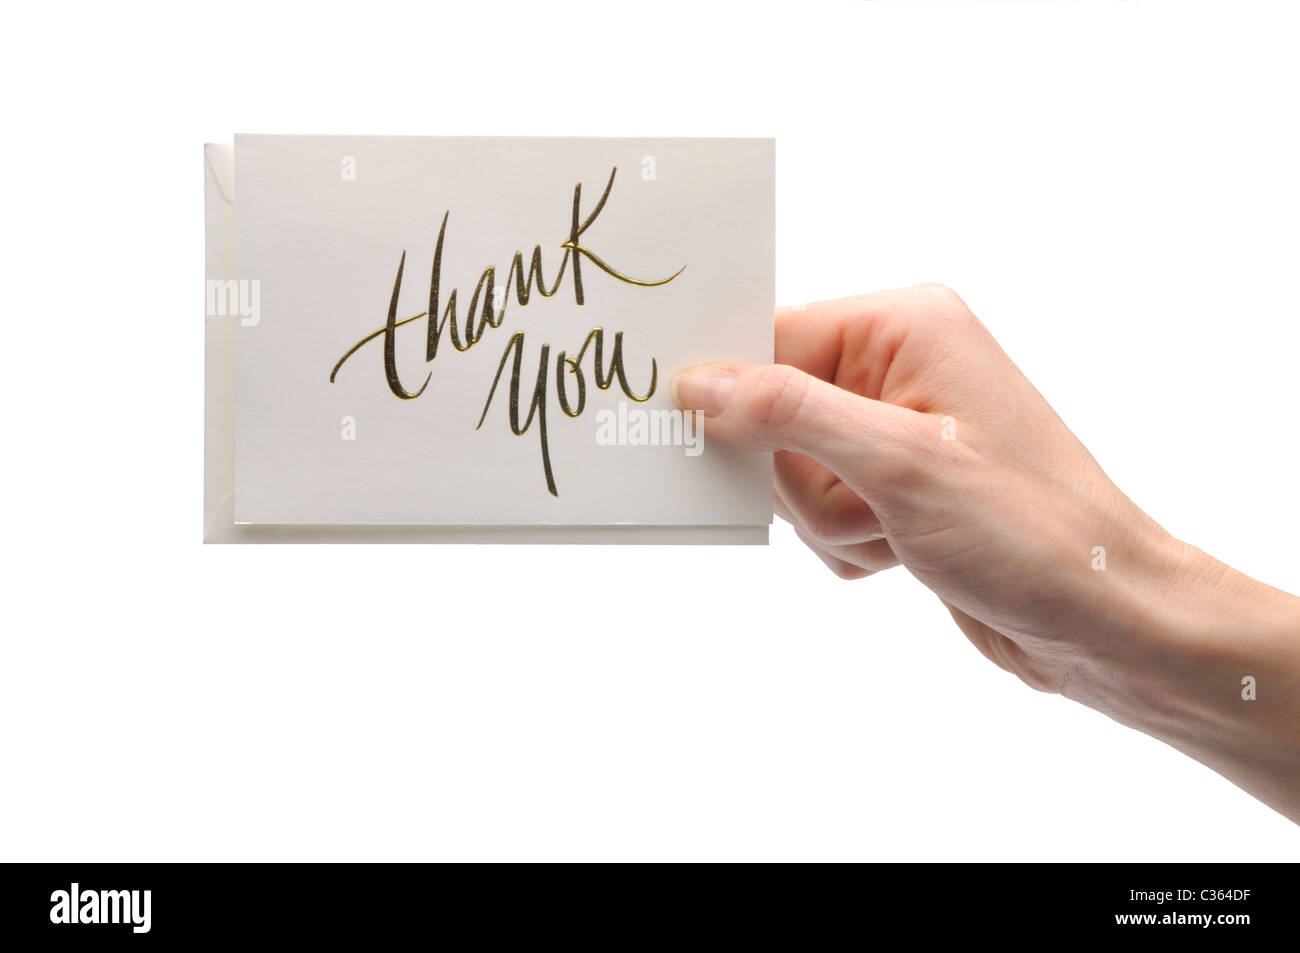 hand holding note card - Stock Image